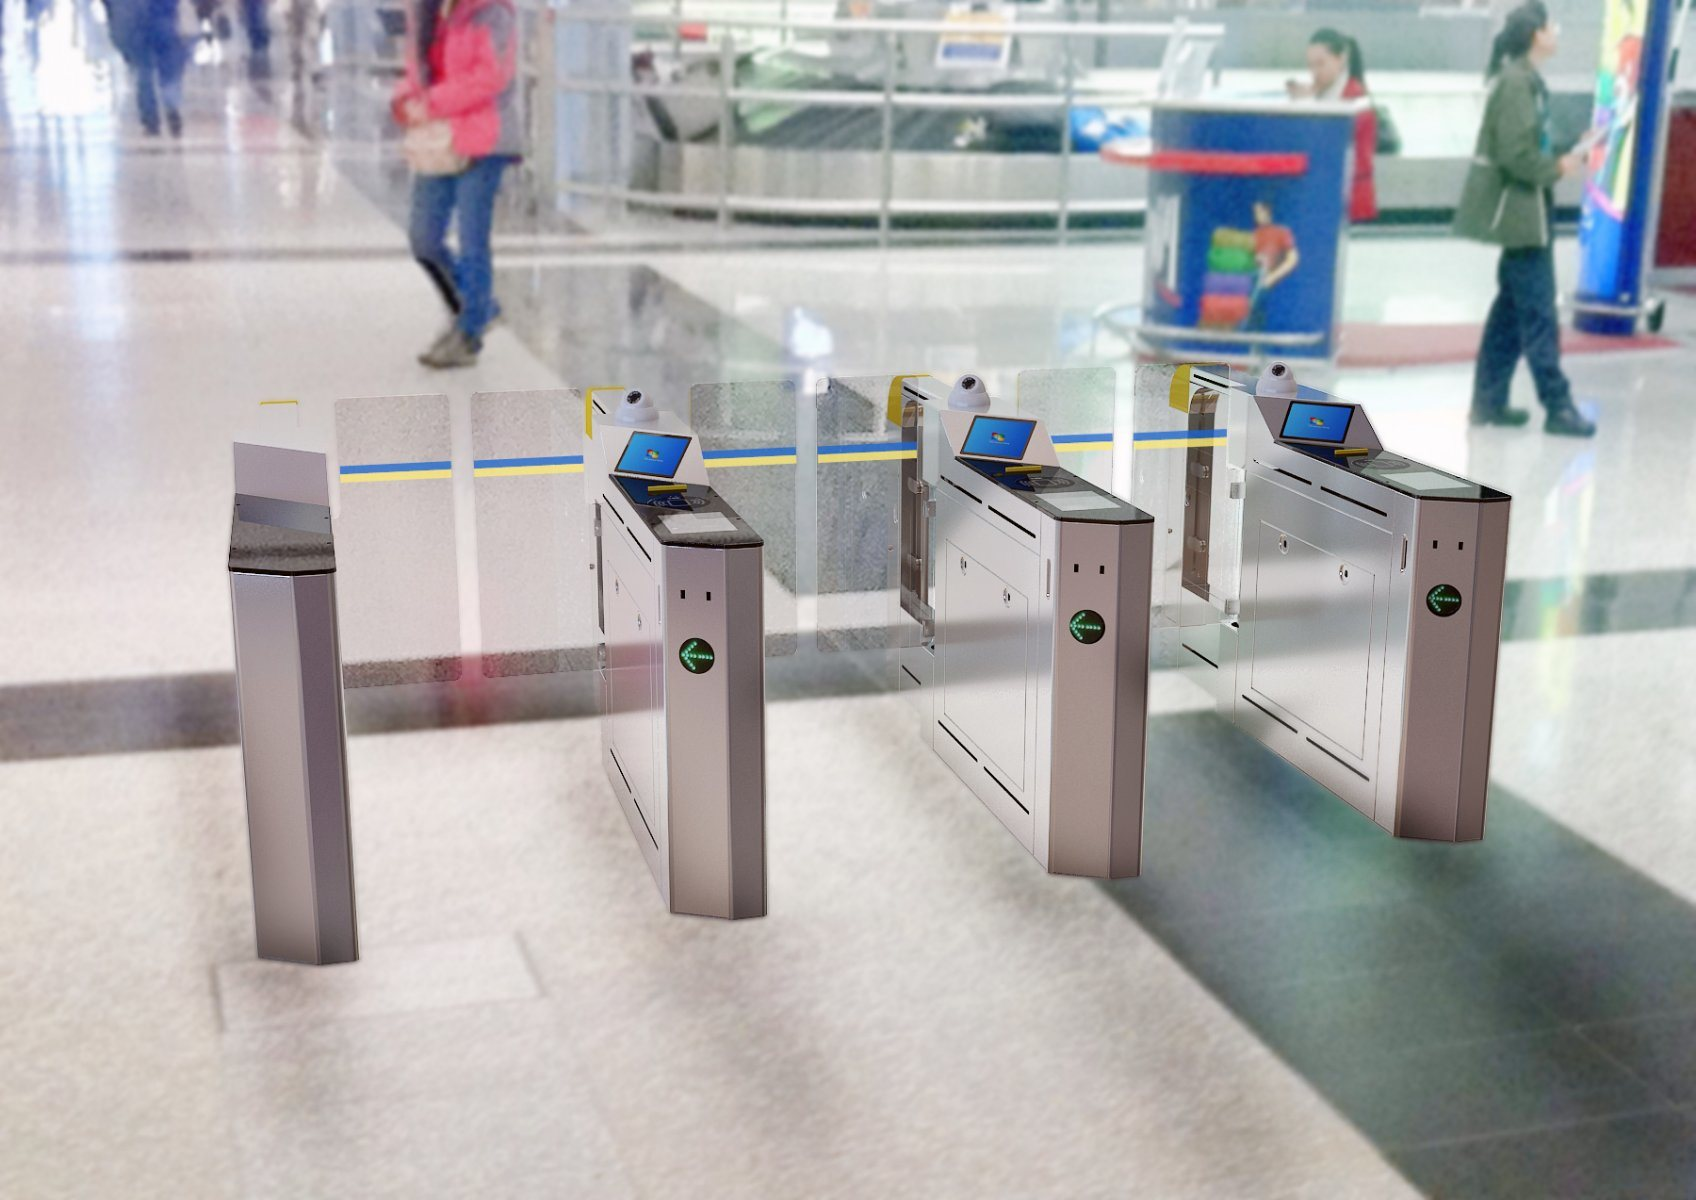 Access Control Automated Gate for Metro/Bus Station